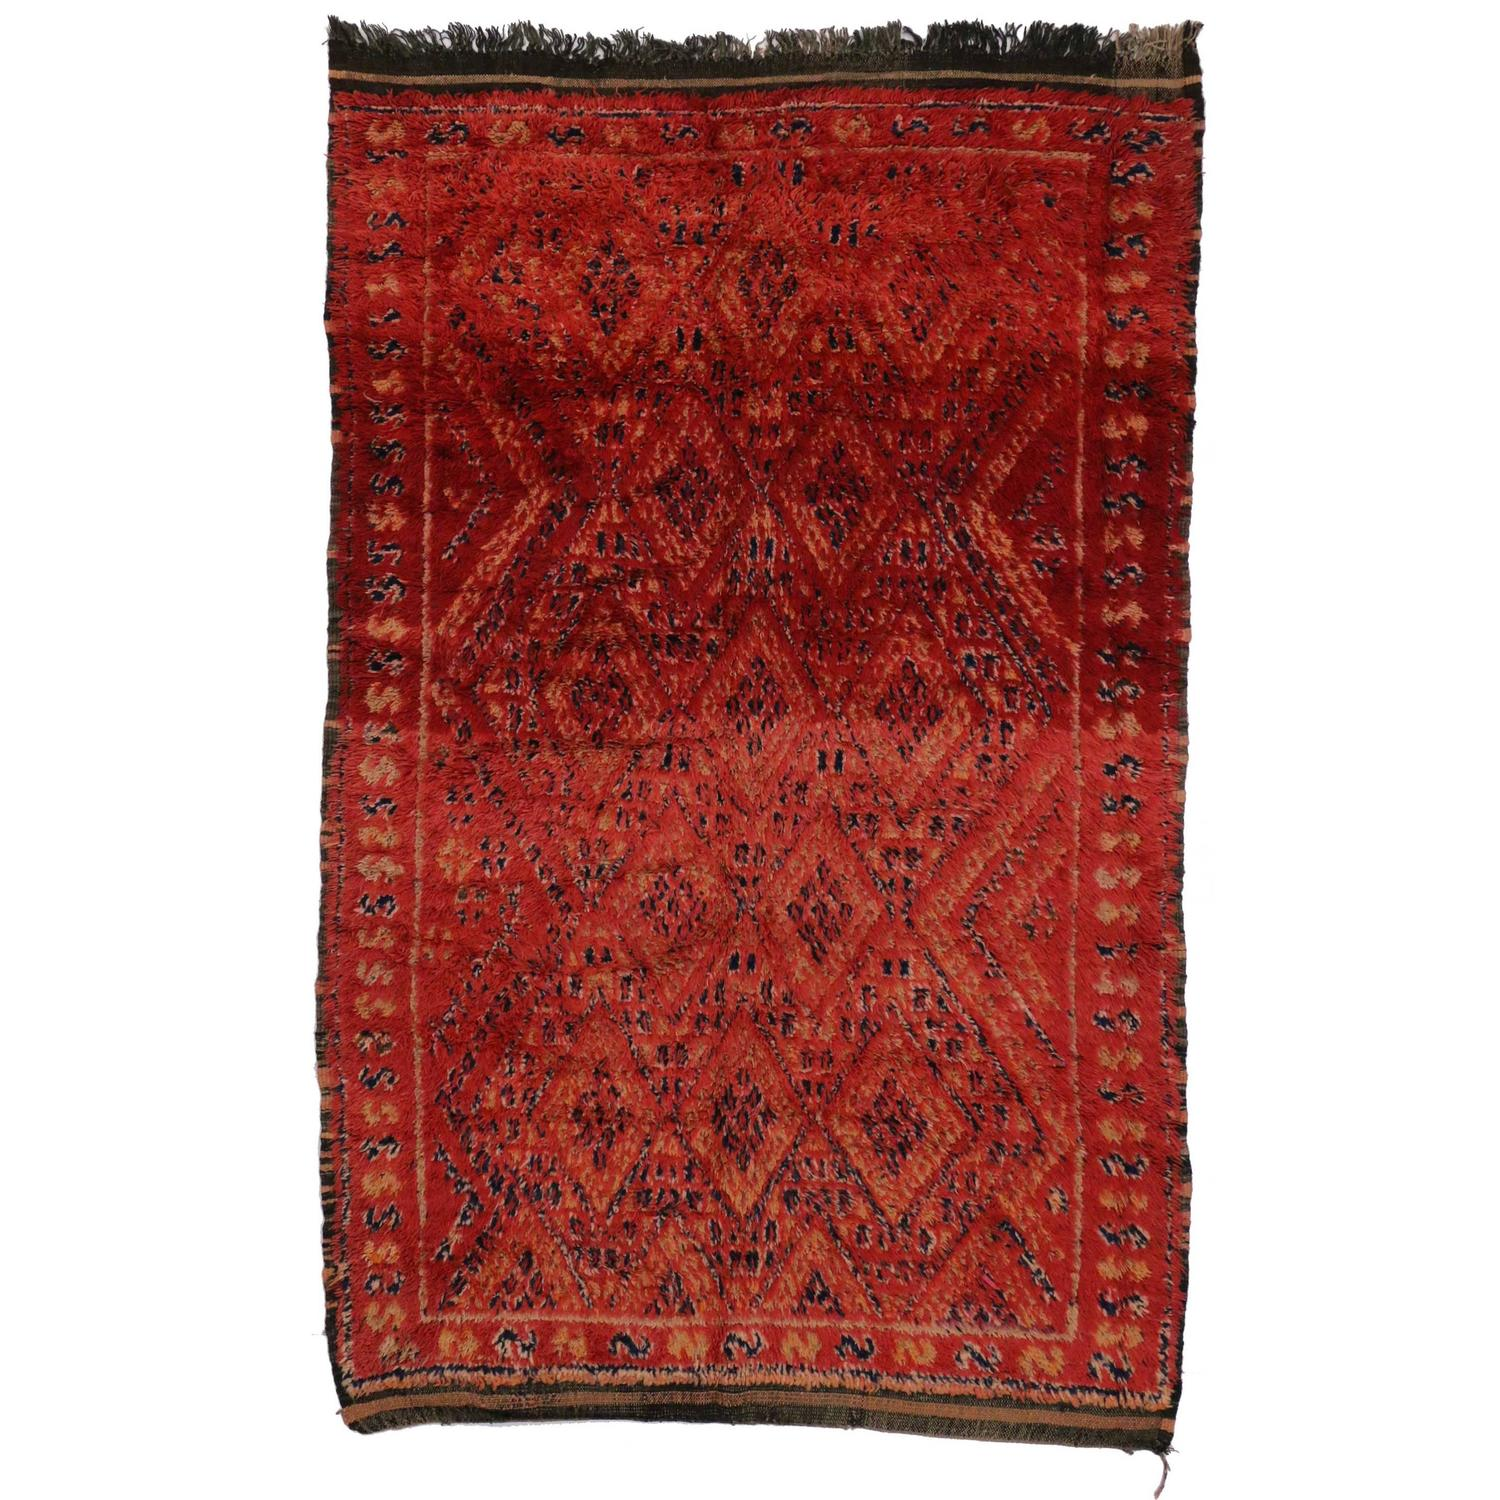 Berber Moroccan Rug With Tribal Design And Mid-Century